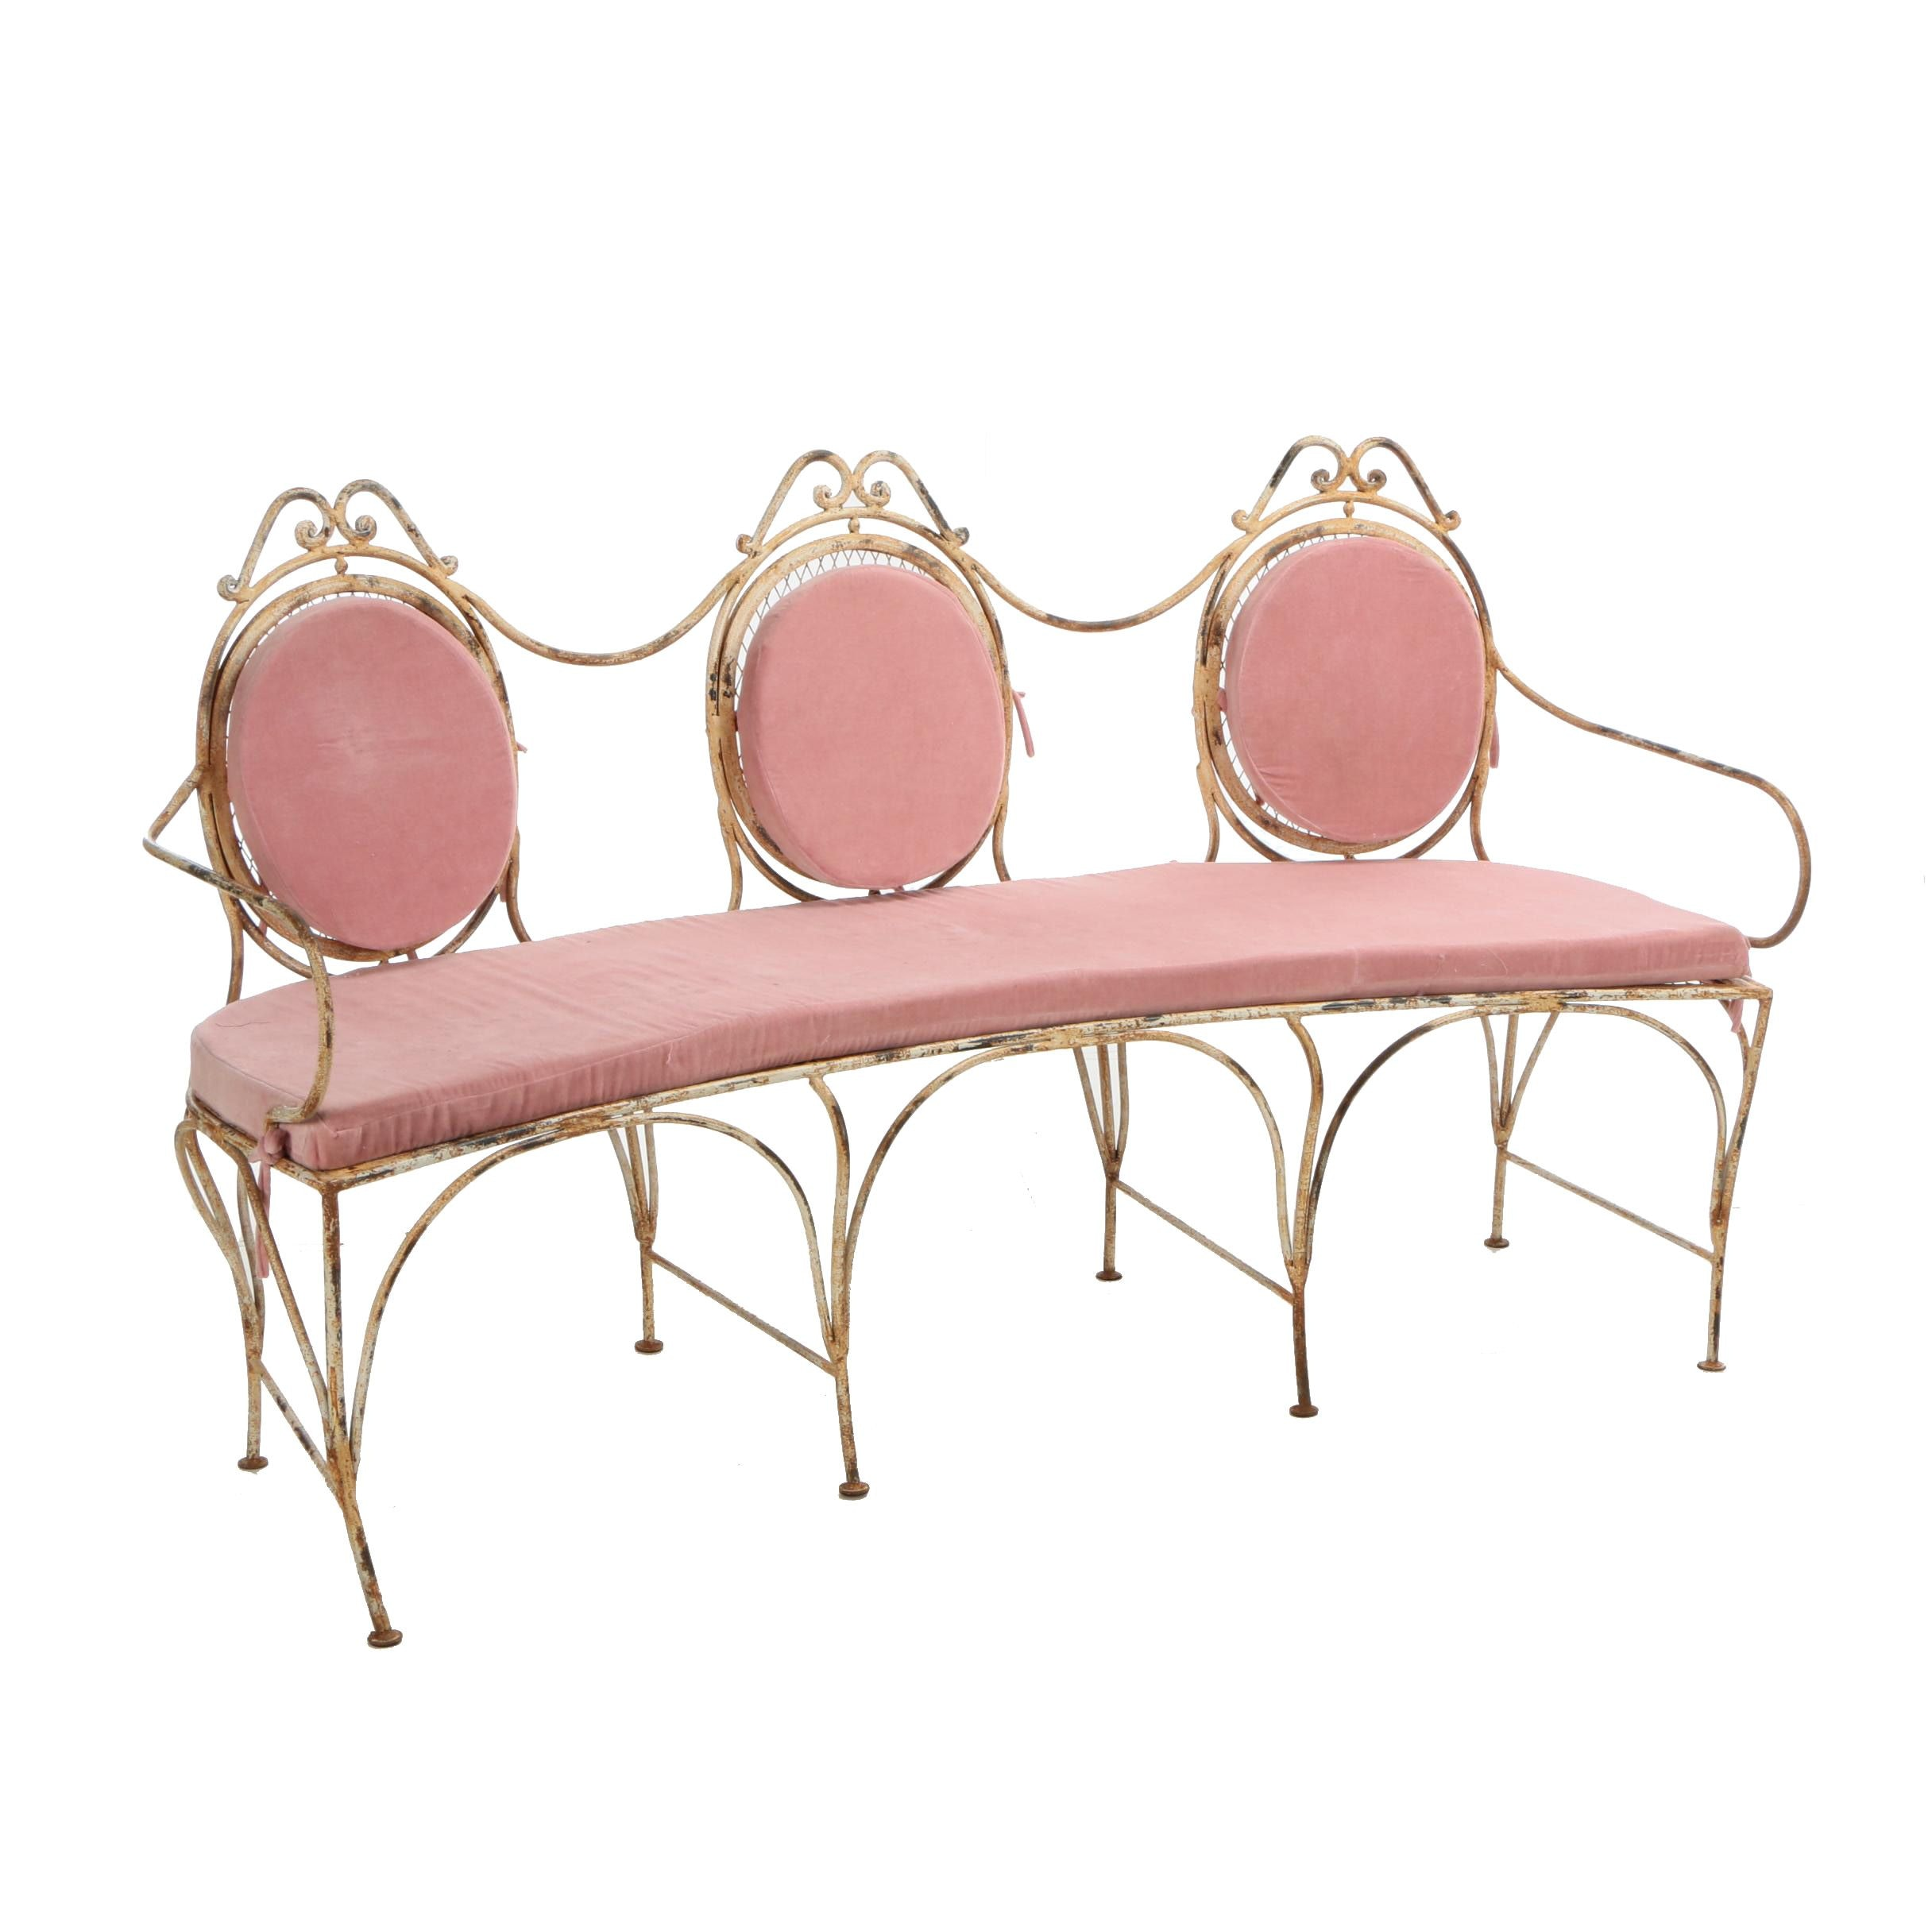 "French Style ""Veranda"" Iron Settee with Removable Velvet Cushions, 21st Century"